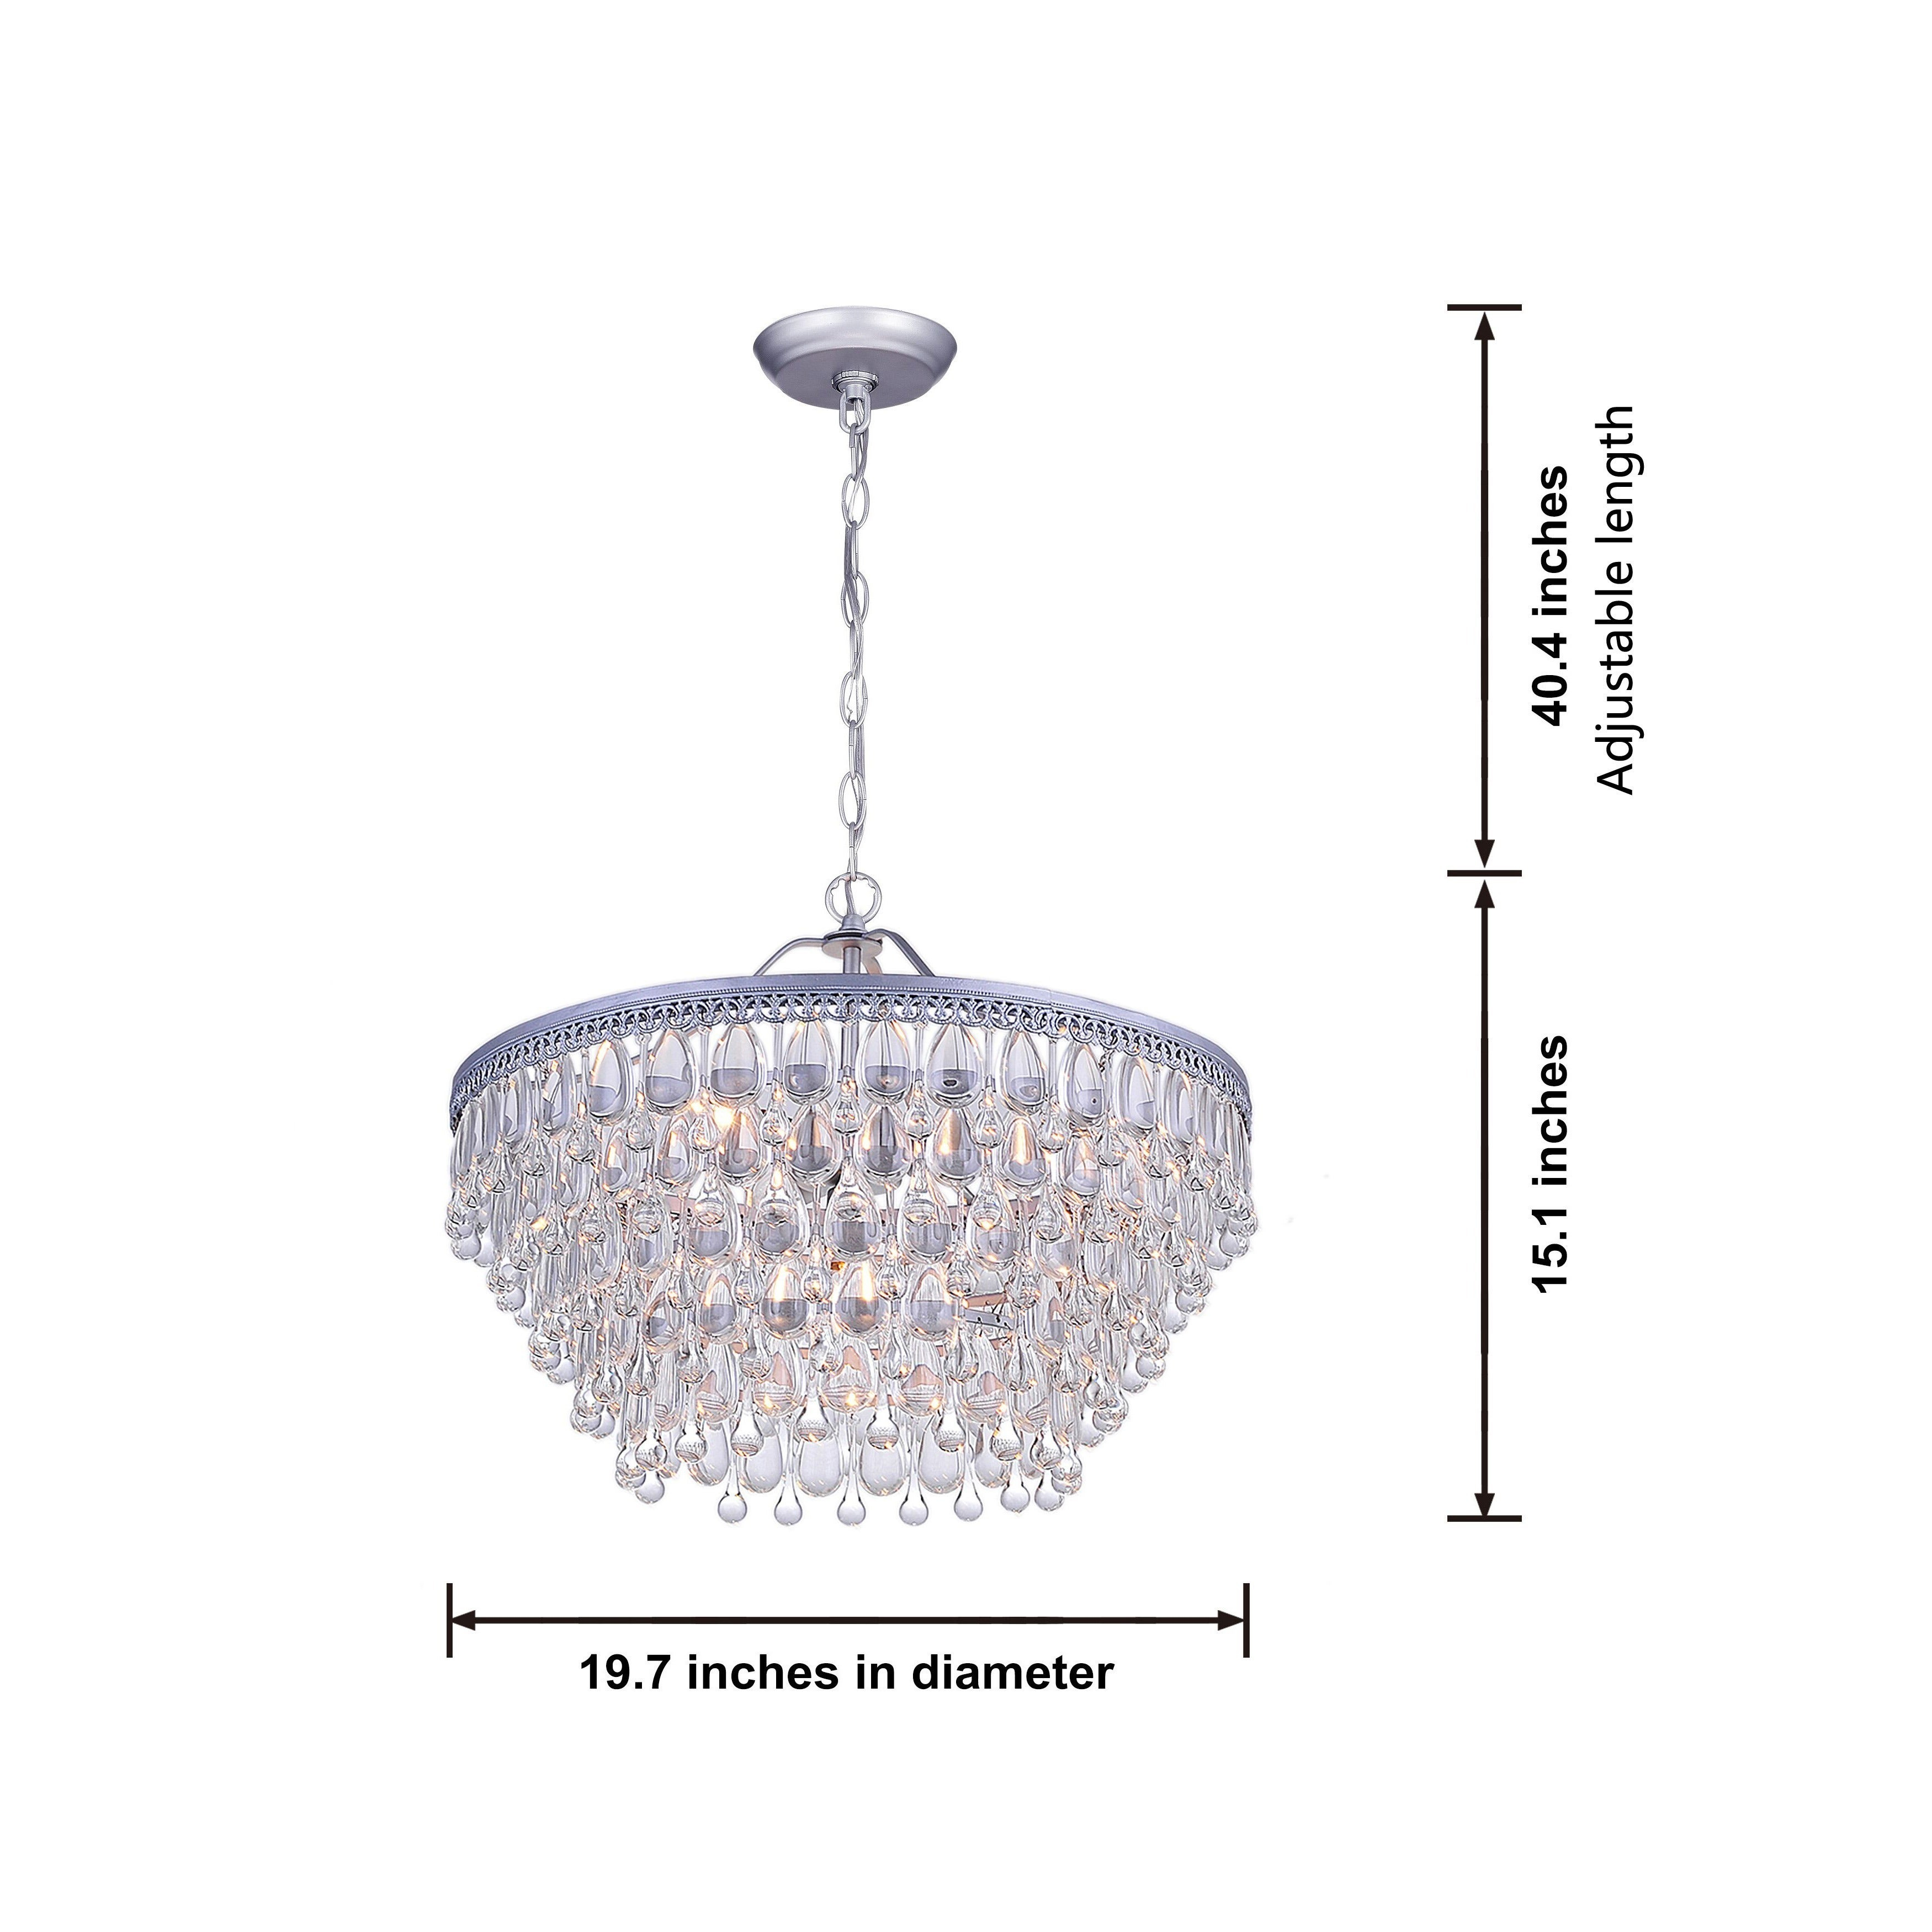 Silver Orchid Crystal 6 Light Chandelier With Clear Teardrop Beads Regarding Bramers 6 Light Novelty Chandeliers (View 13 of 30)